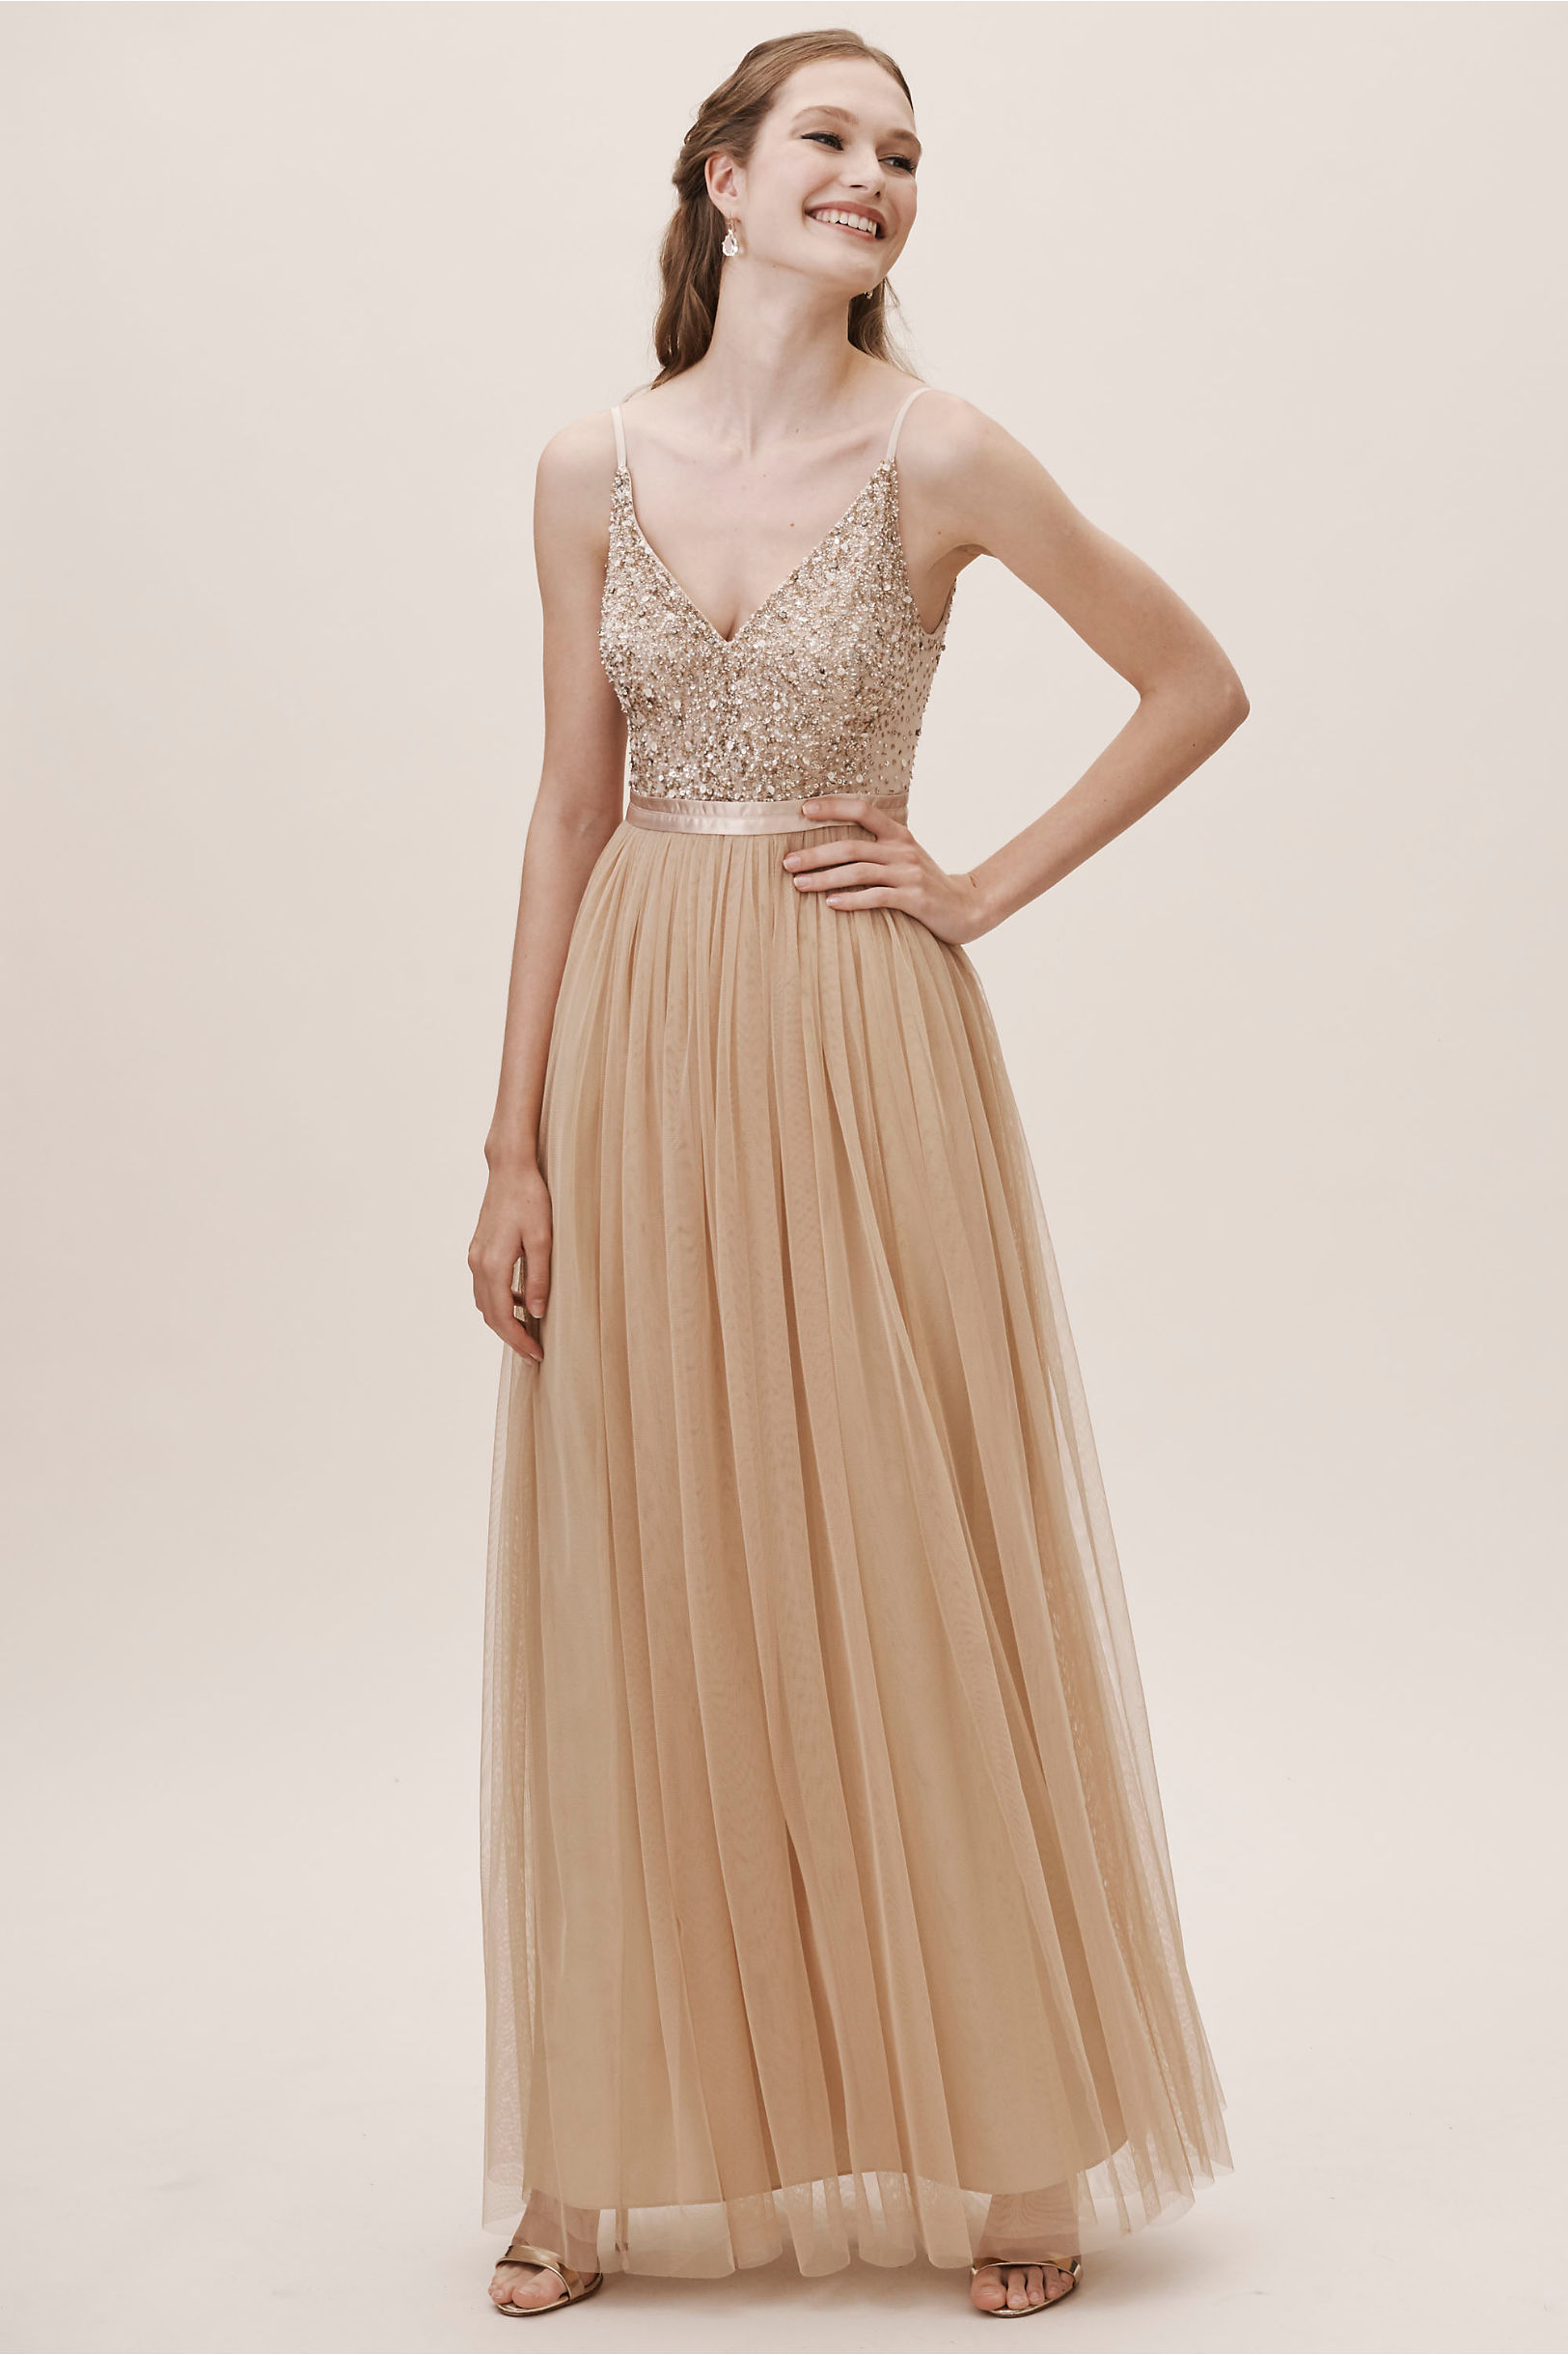 Bridesmaid dresses gowns bhldn avery dress avery dress ombrellifo Gallery